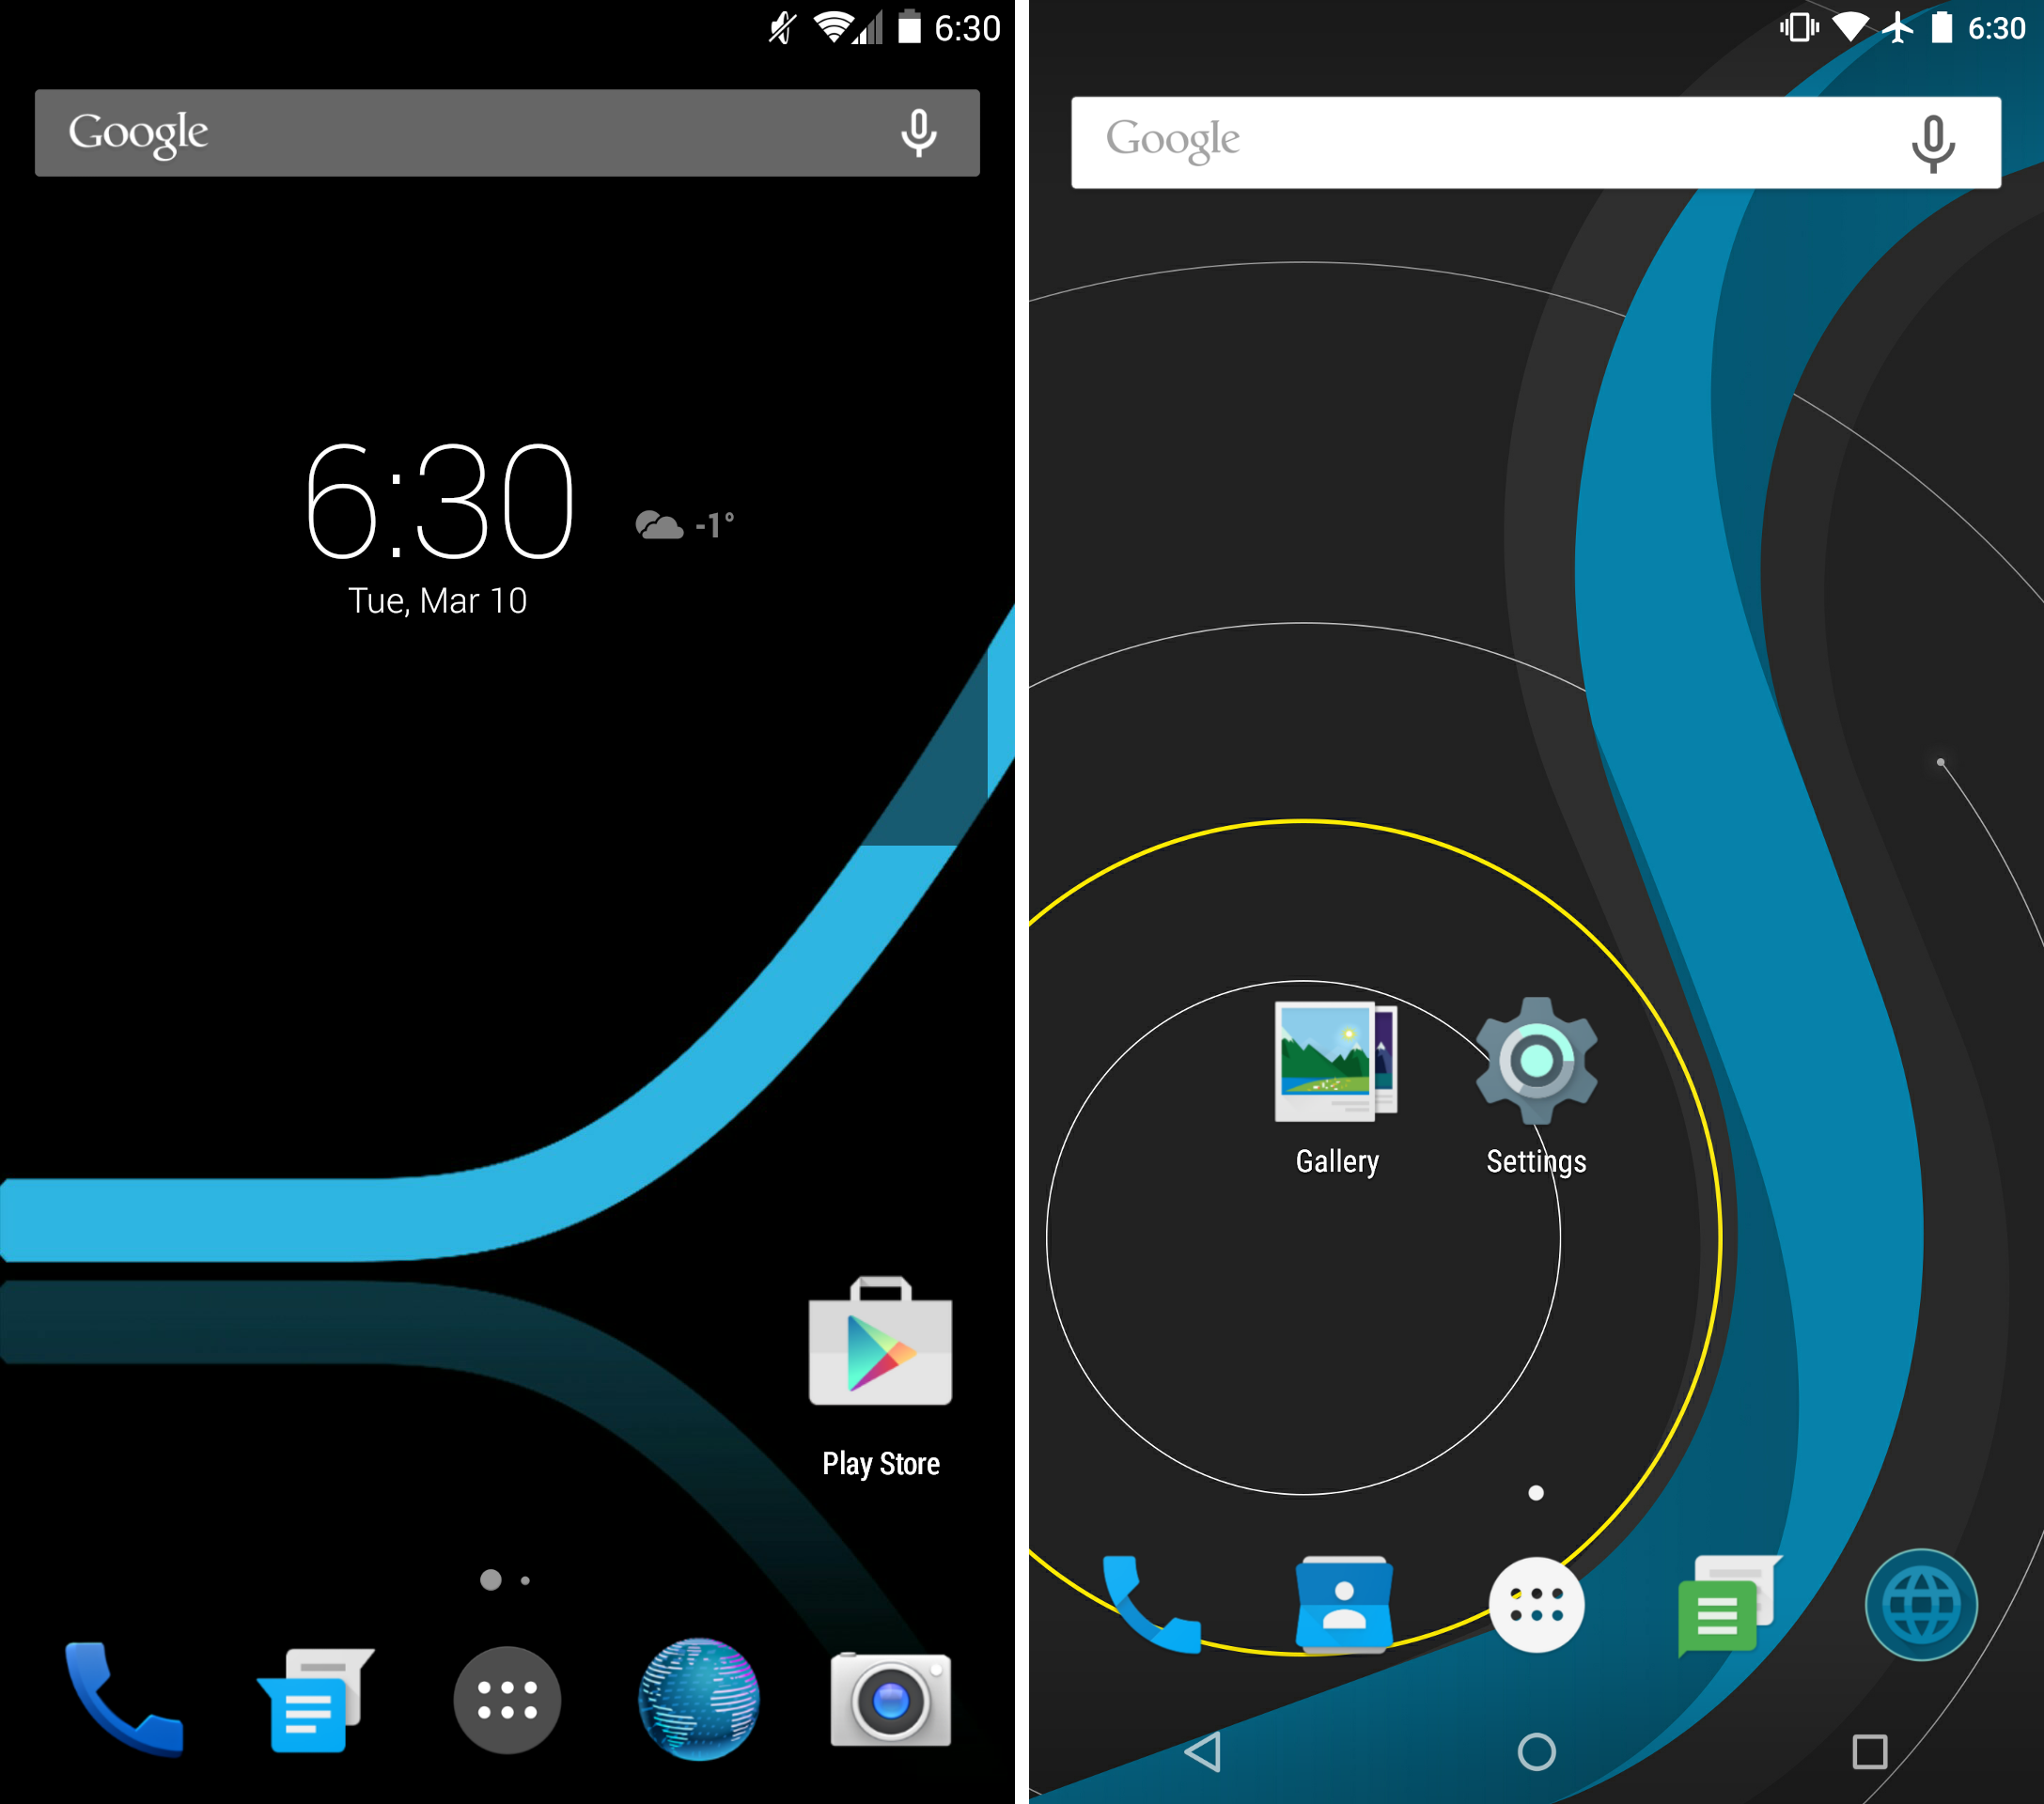 Slim vs. Slim - Home Screens